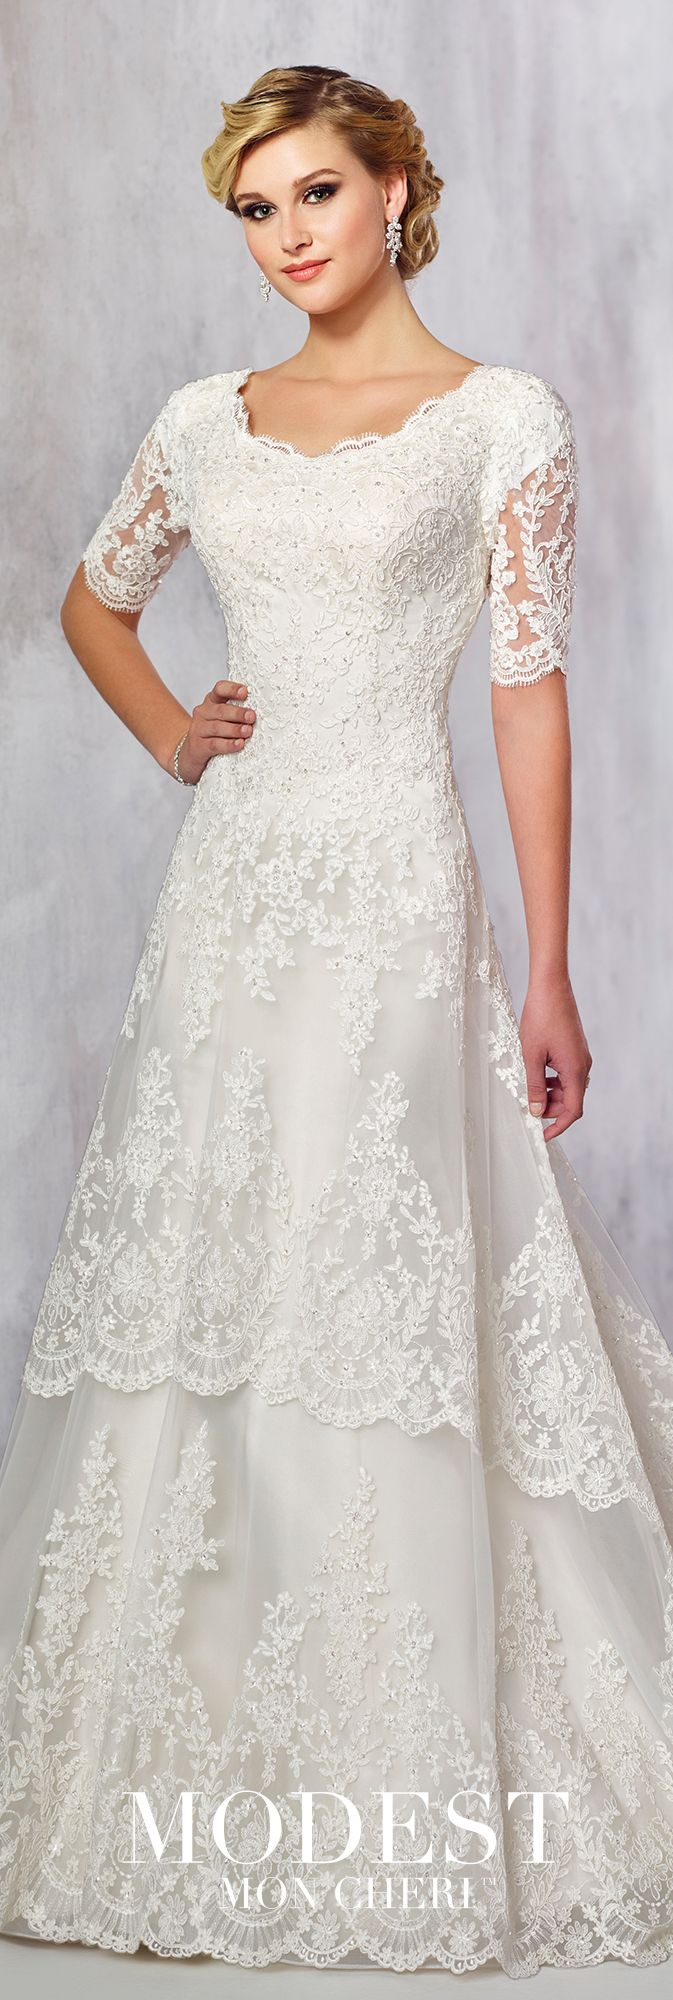 modest wedding dresses fall 2017 collection style tr21715 short sleeve lace a line